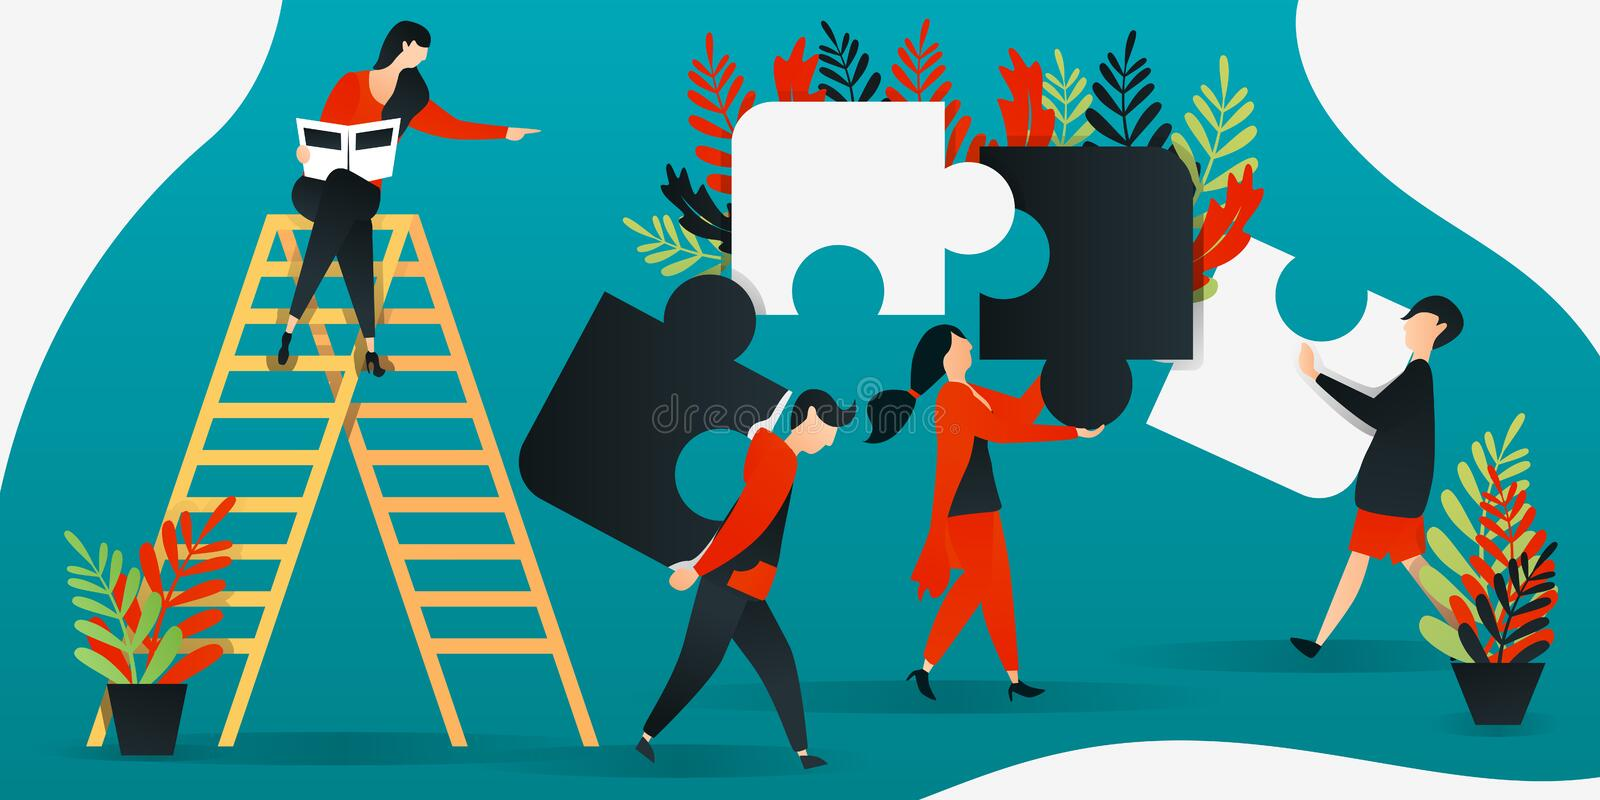 Flat cartoon character. vector illustration for construction, leadership, teamwork, business. people putting together puzzle, peop vector illustration